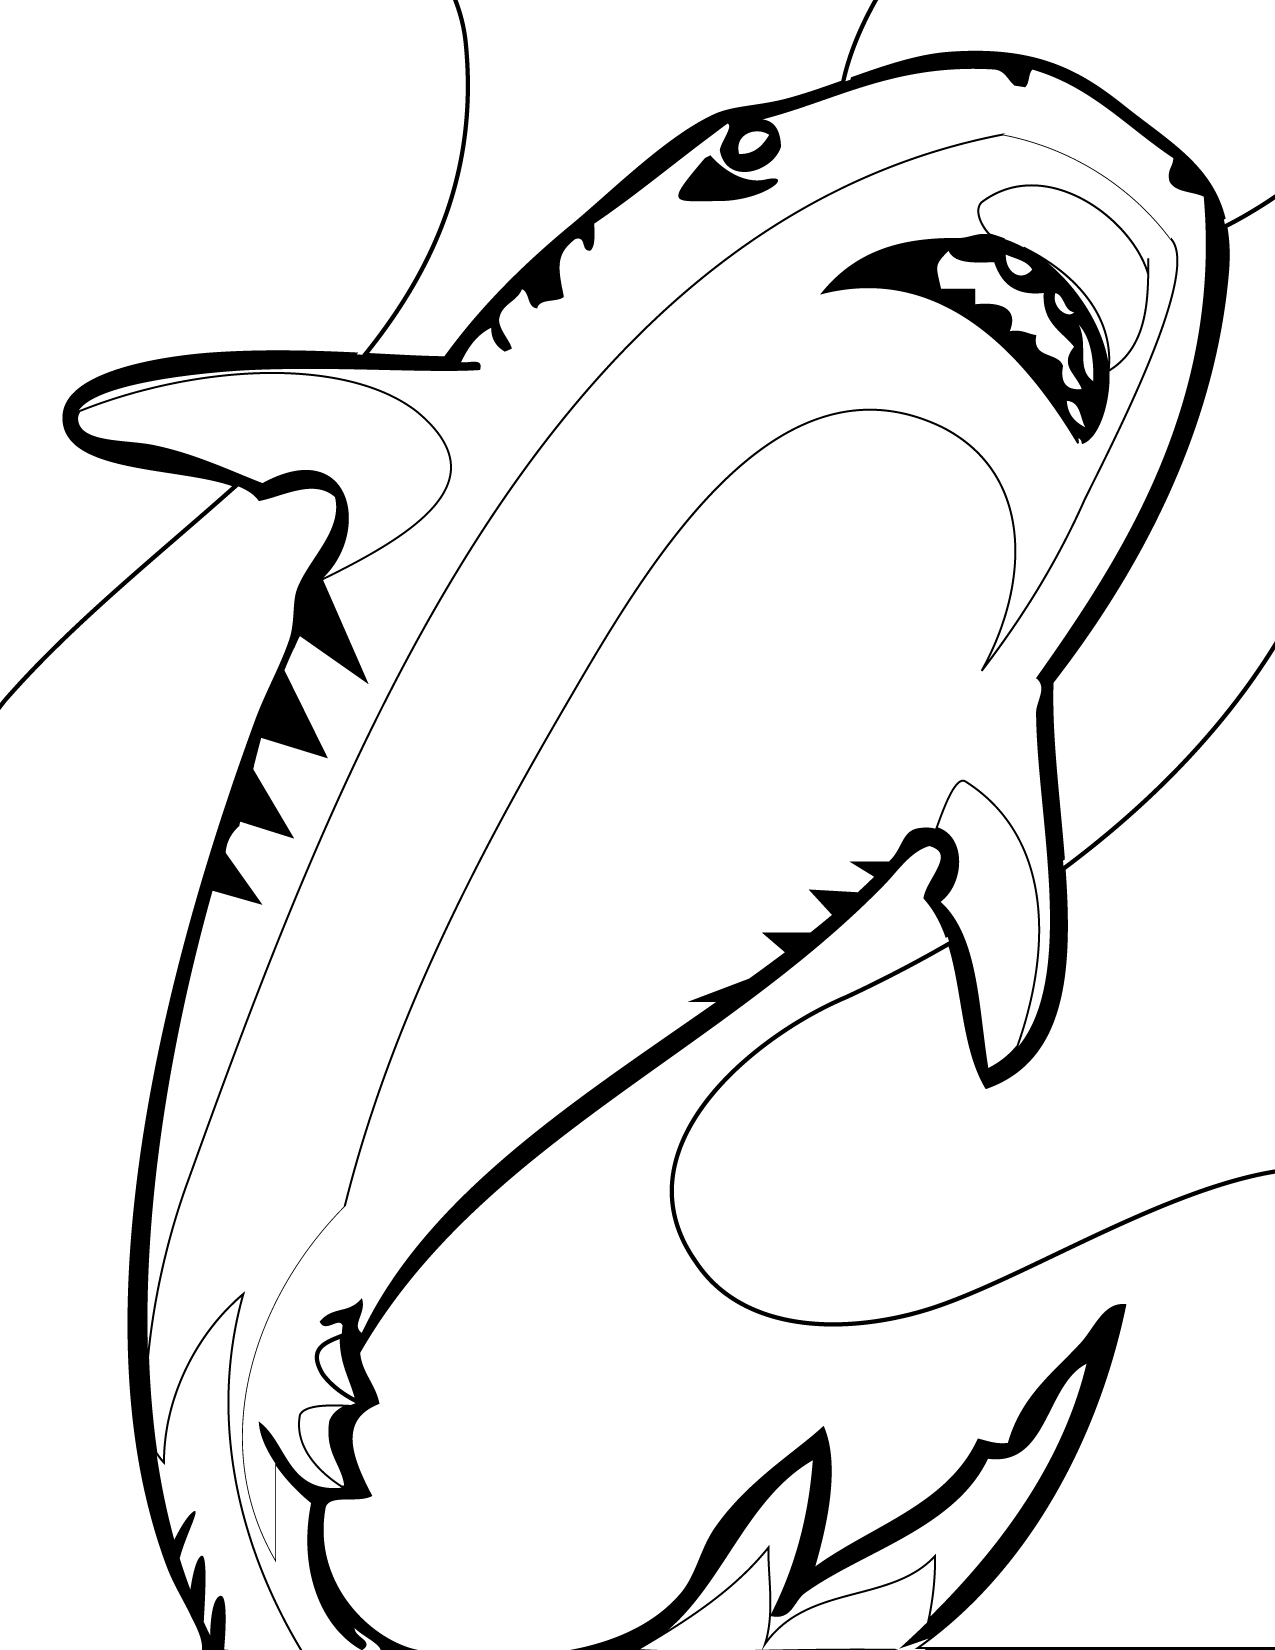 Sharks to color